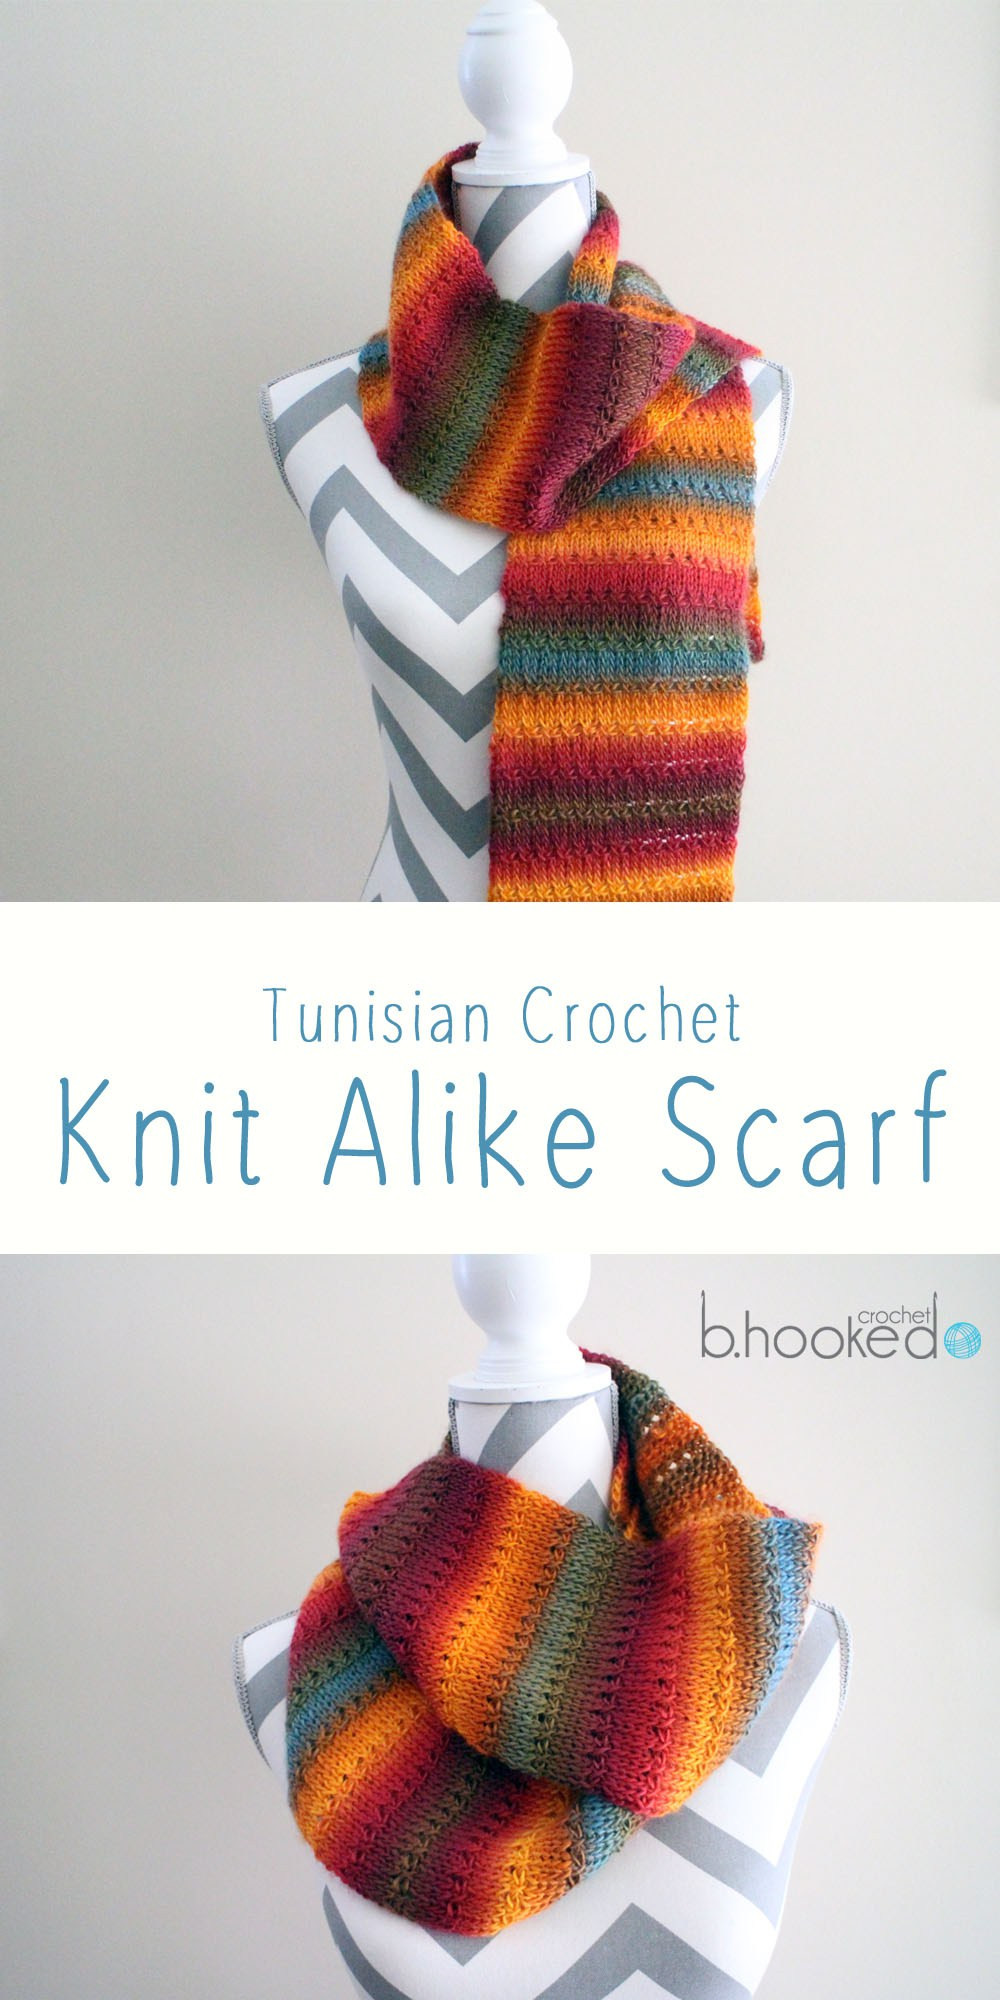 Knit Alike Tunisian Crochet Scarf Free Pattern